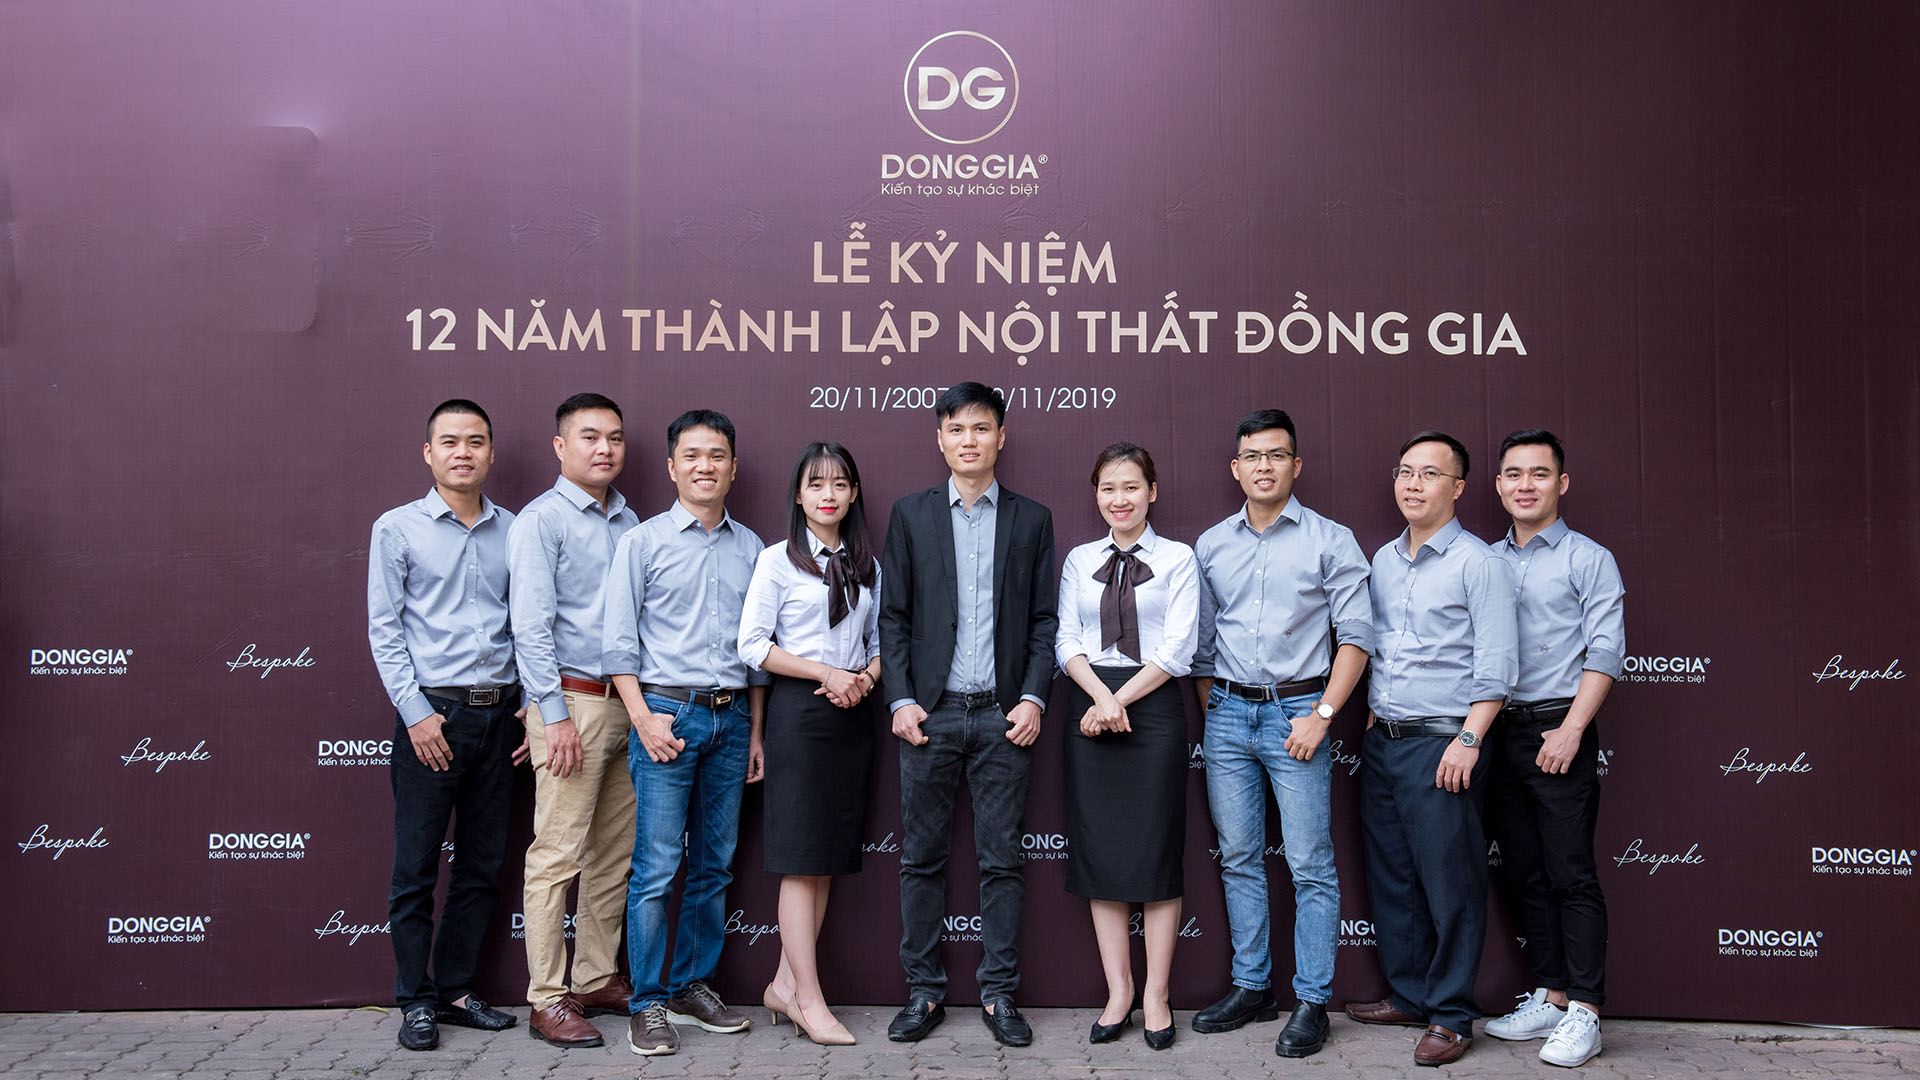 dg-bespoke-2020-cham-toi-dinh-cao-hoan-hao (5)